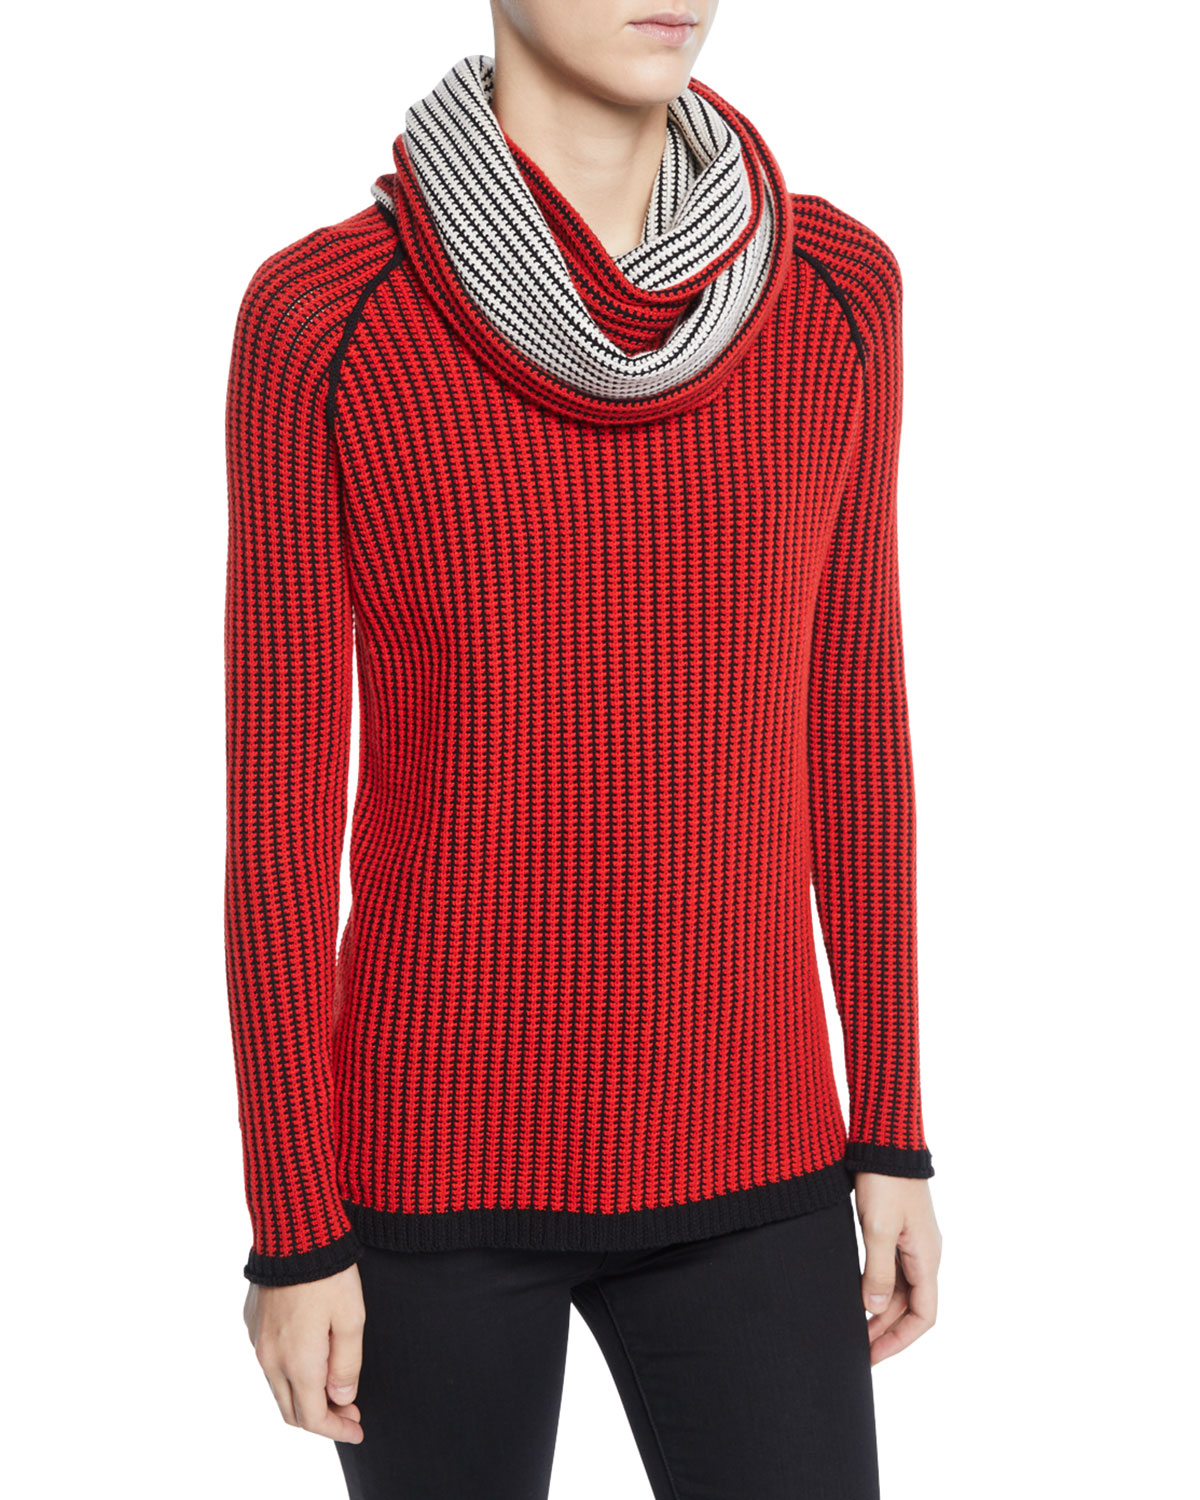 Chain Stitch Cashmere Sweater With Scarf, Petite, Red